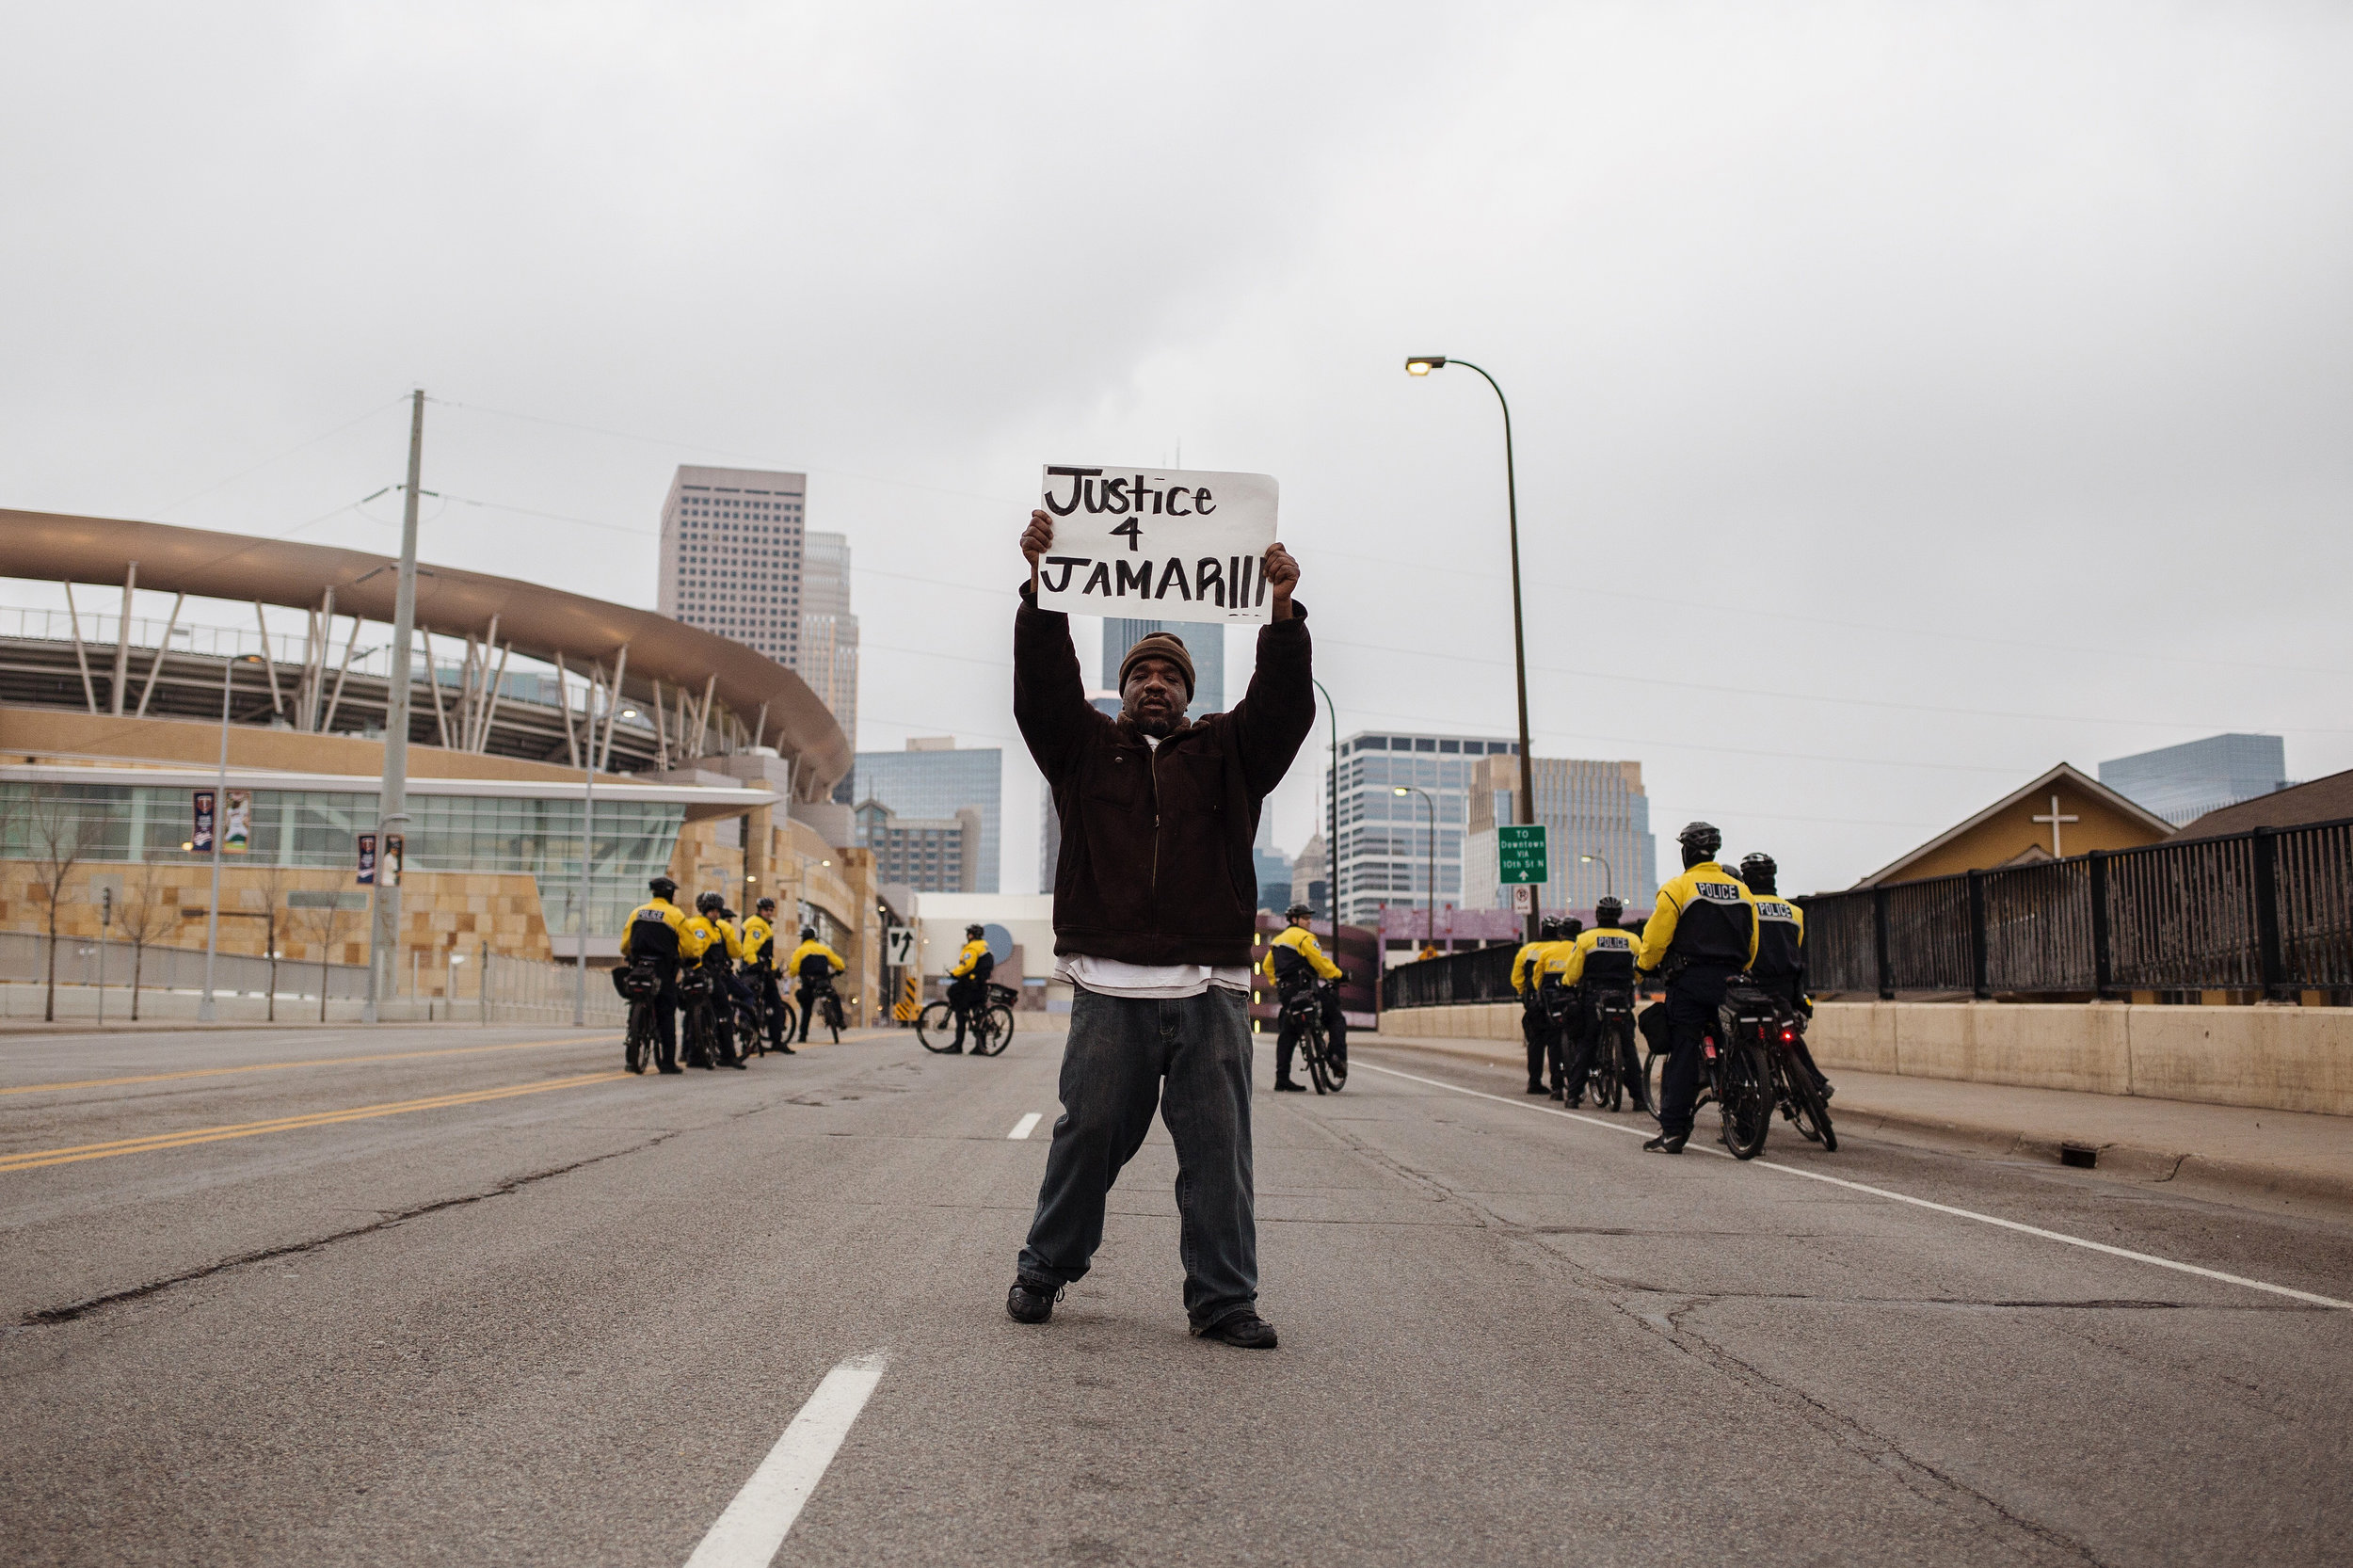 Donnie Straub, 42, of north Minneapolis holds up a sign at the front of the demonstrators as they marched towards the Hennepin County Government Center on Wednesday, March 30, 2016.